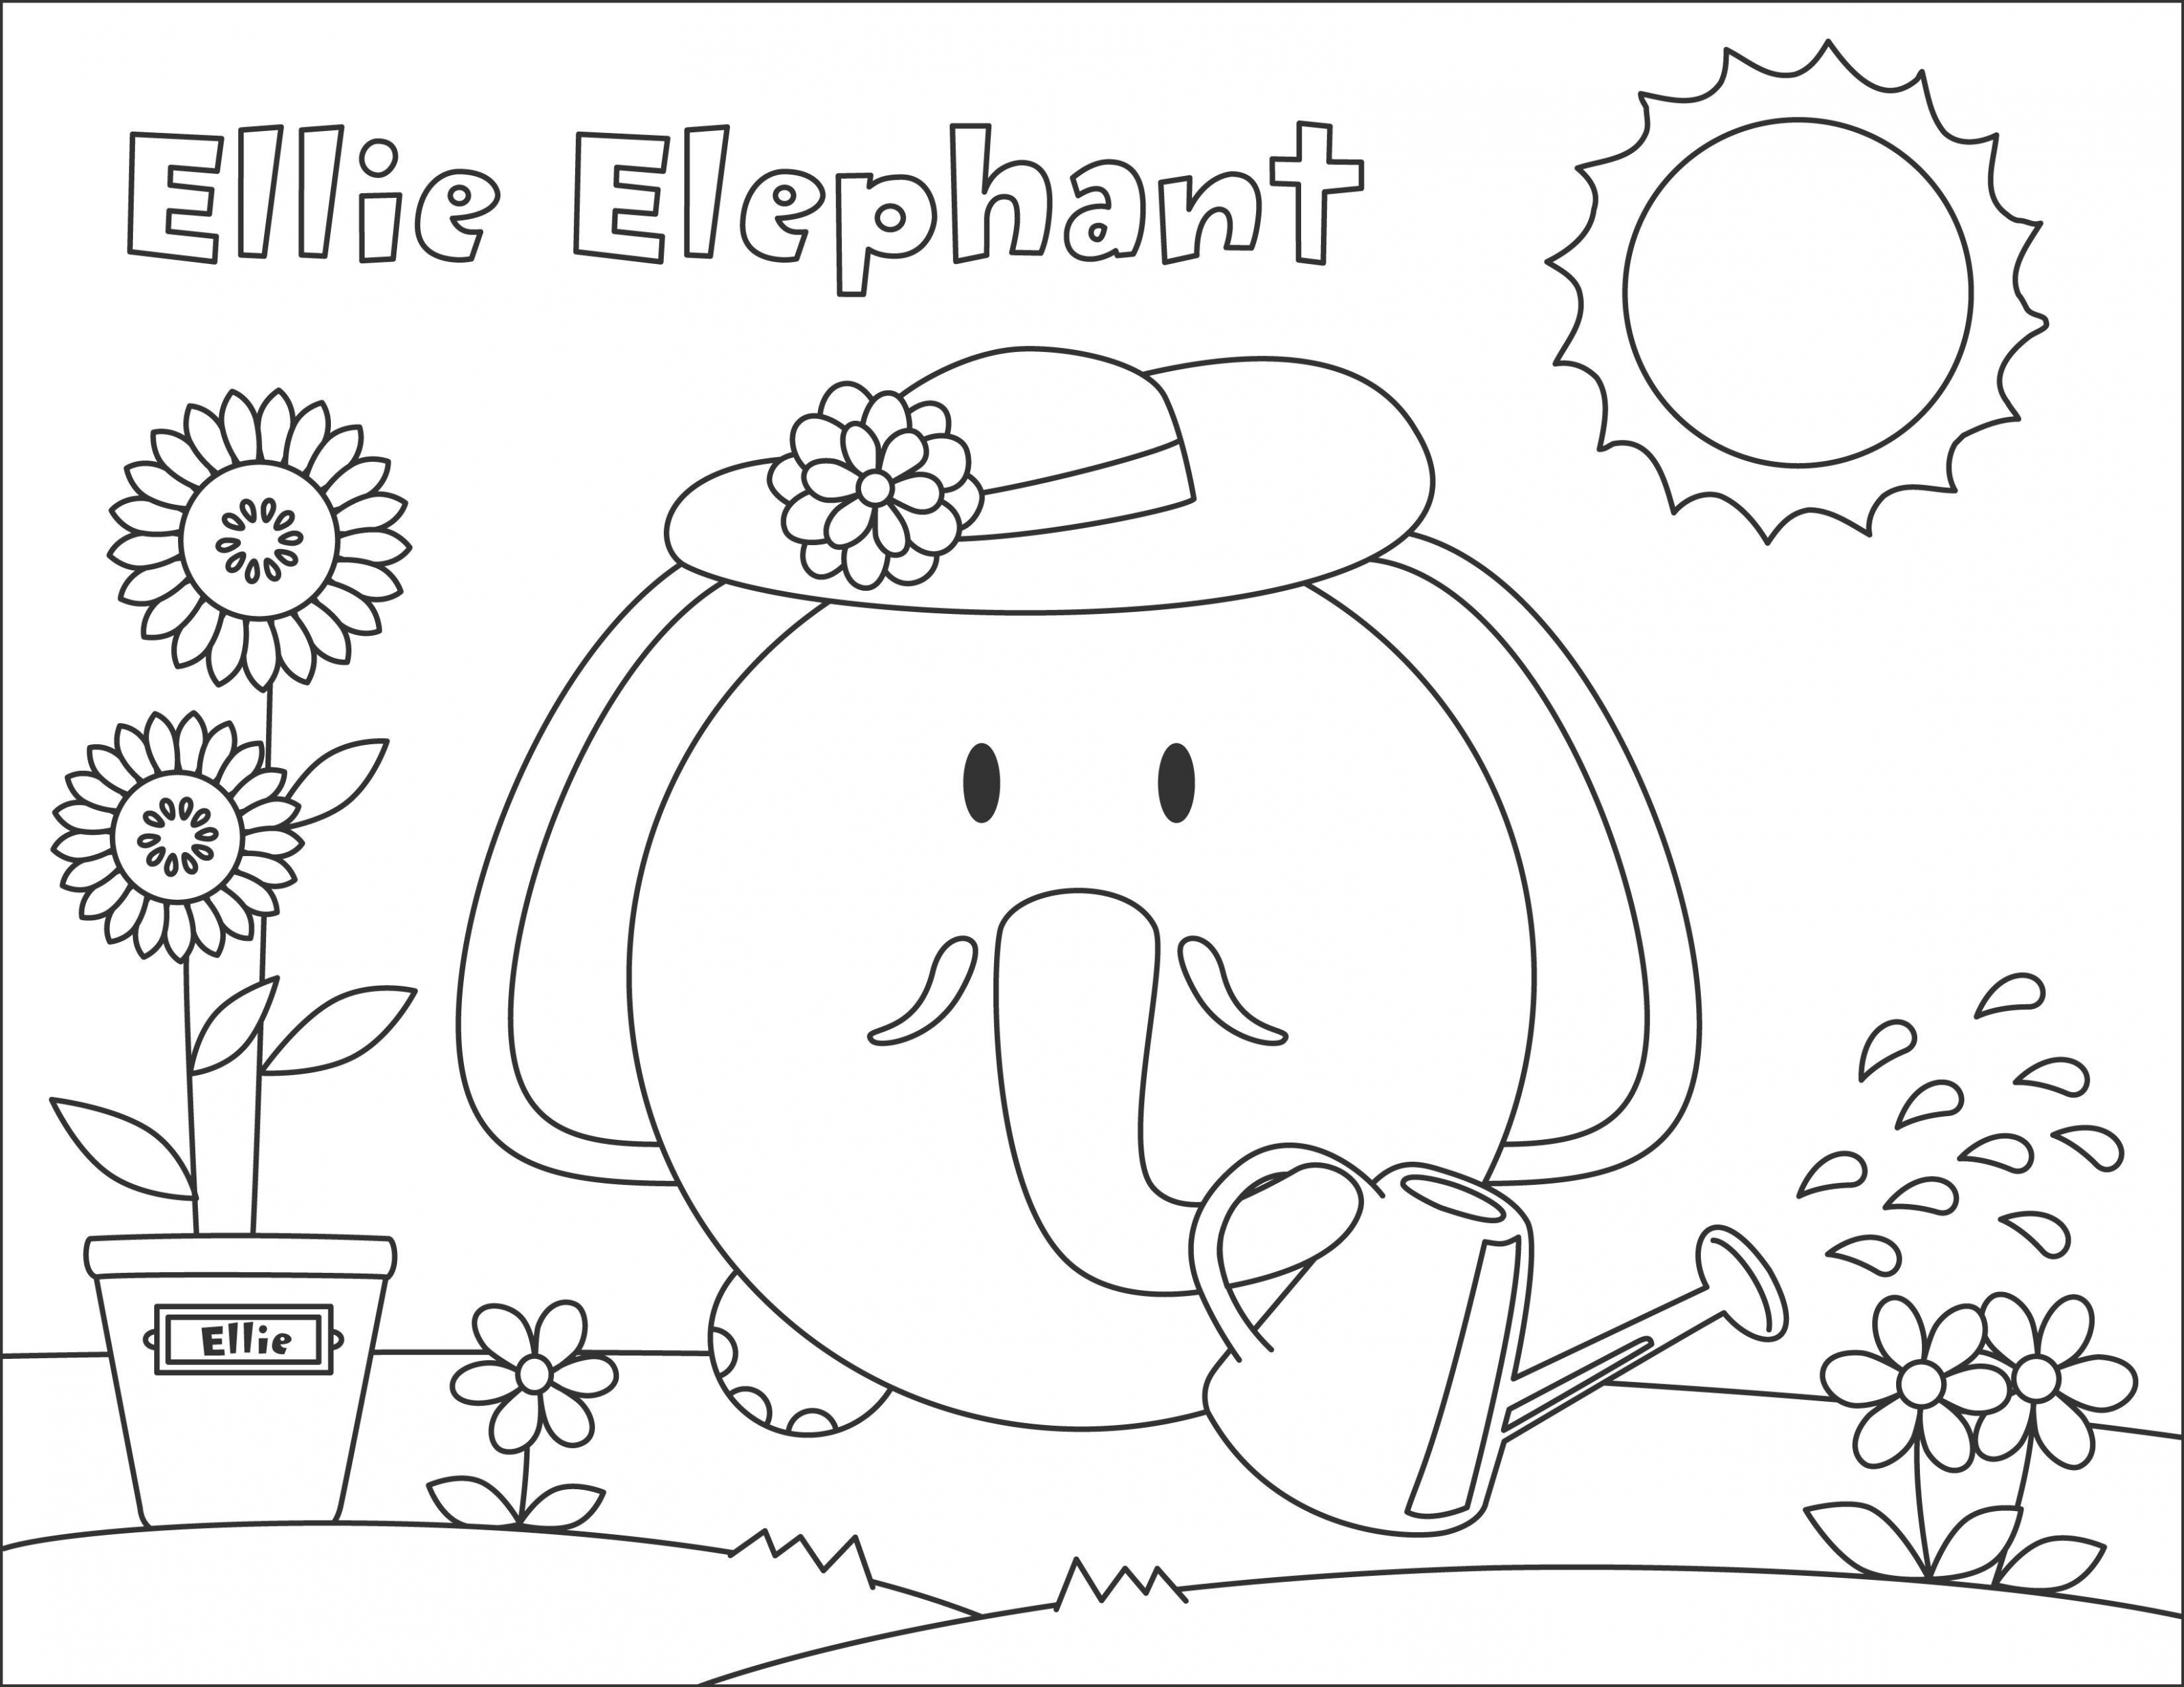 Thanksgiving Coloring Pages Dltk Butterfly Valid | Coloring Pages